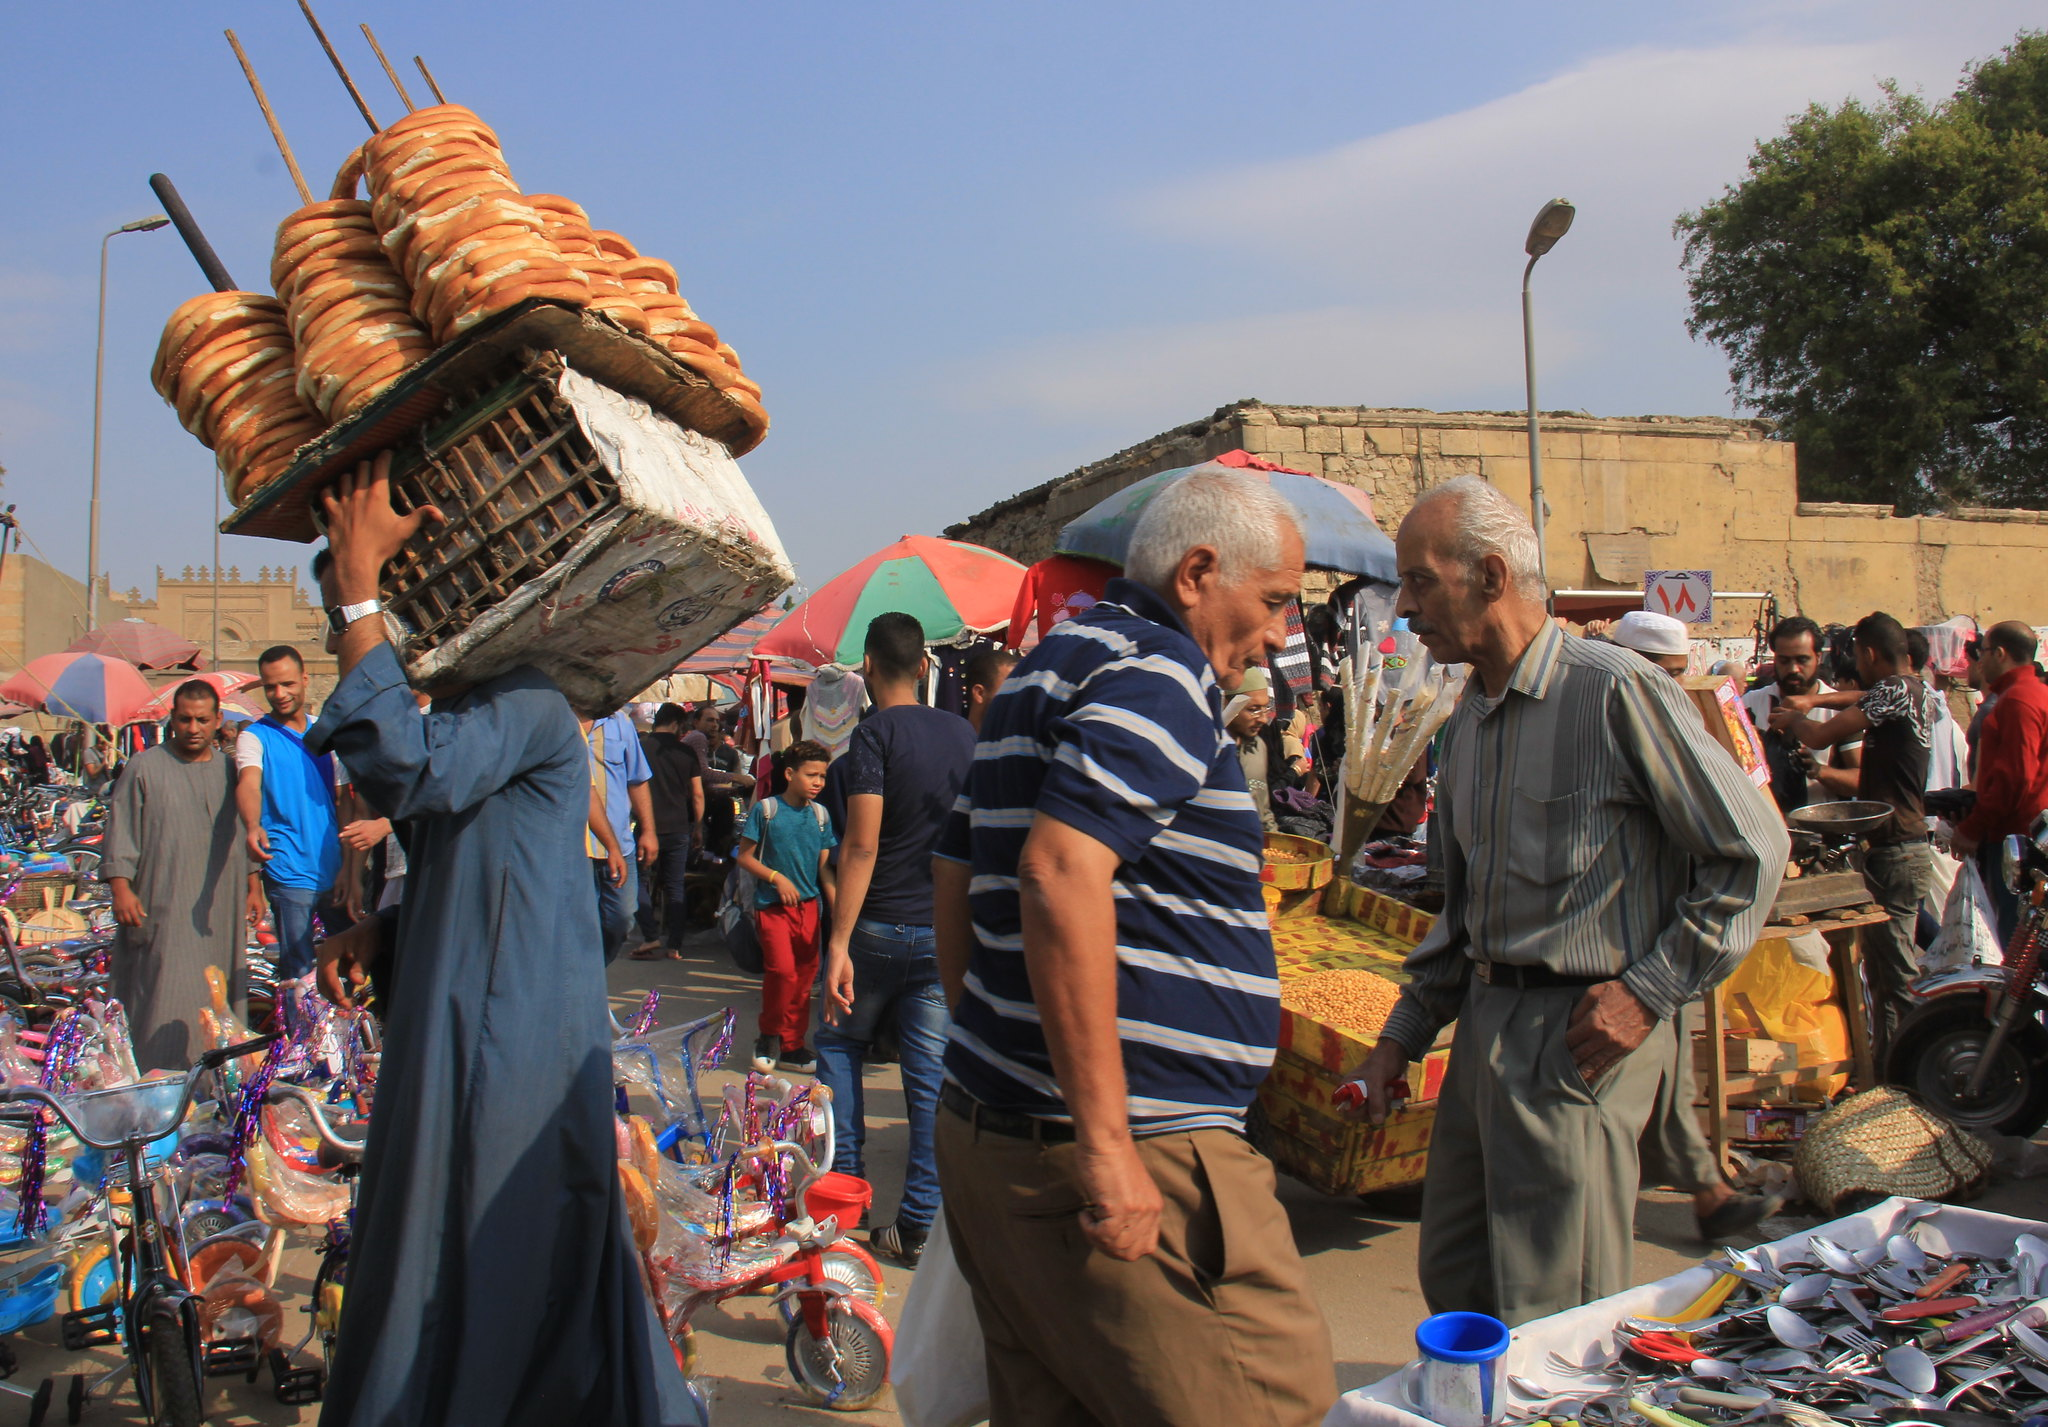 Souq al Goma is also called Friday Market